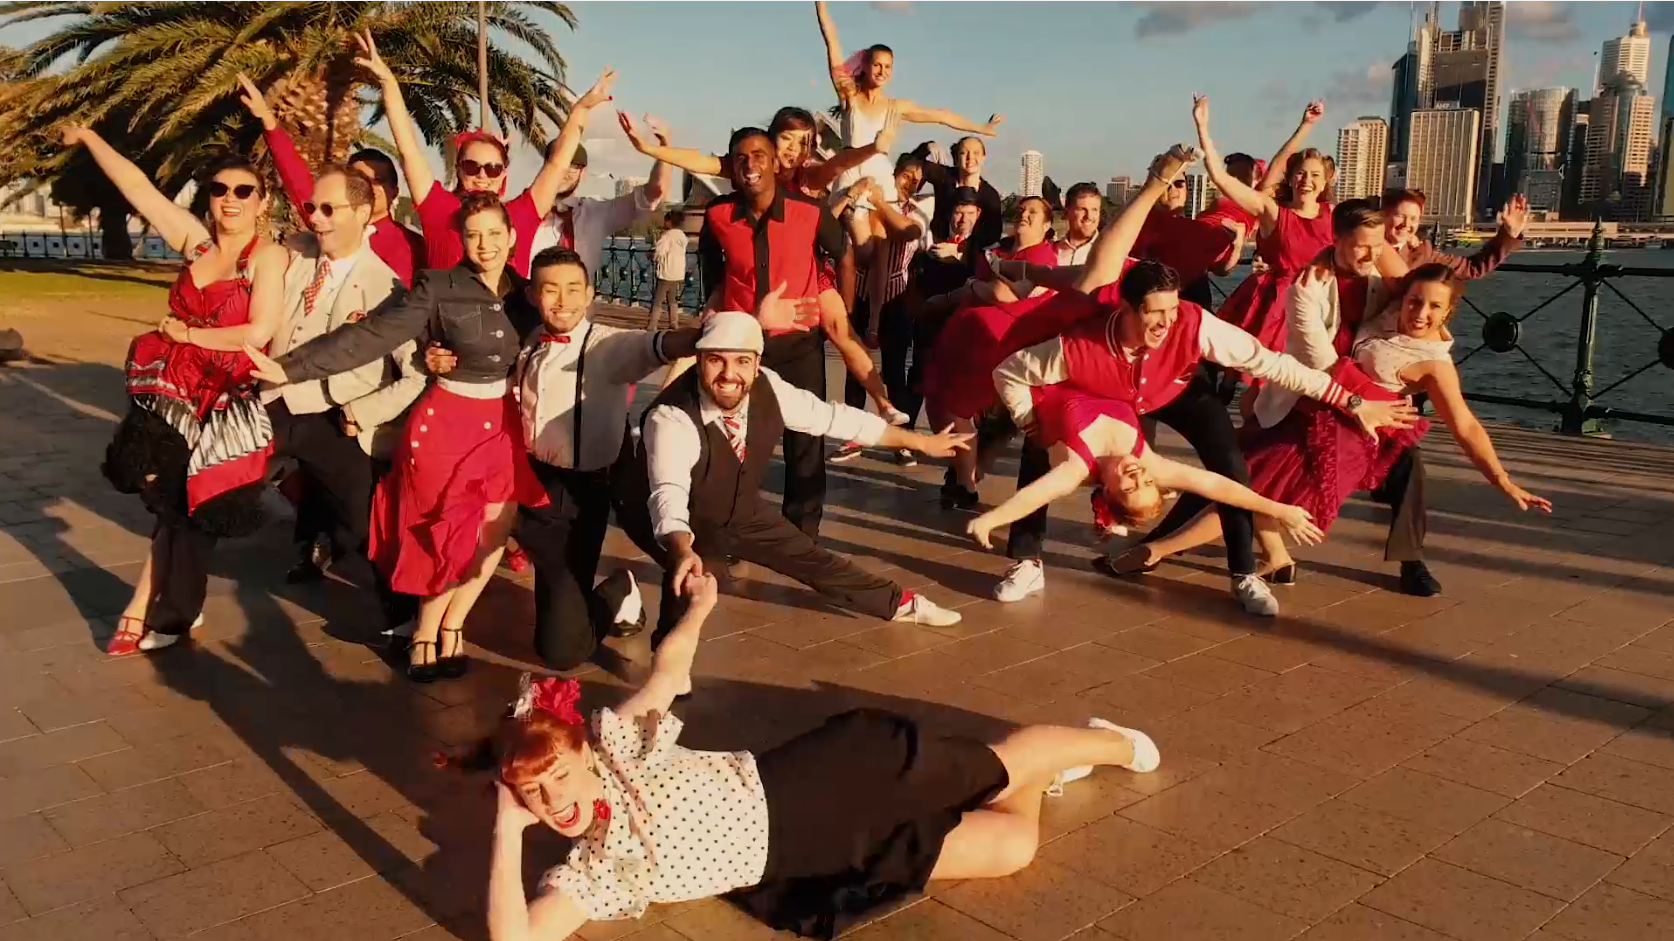 All About Swing Dancing, Lindyhop & Rock 'n' Roll Sydney